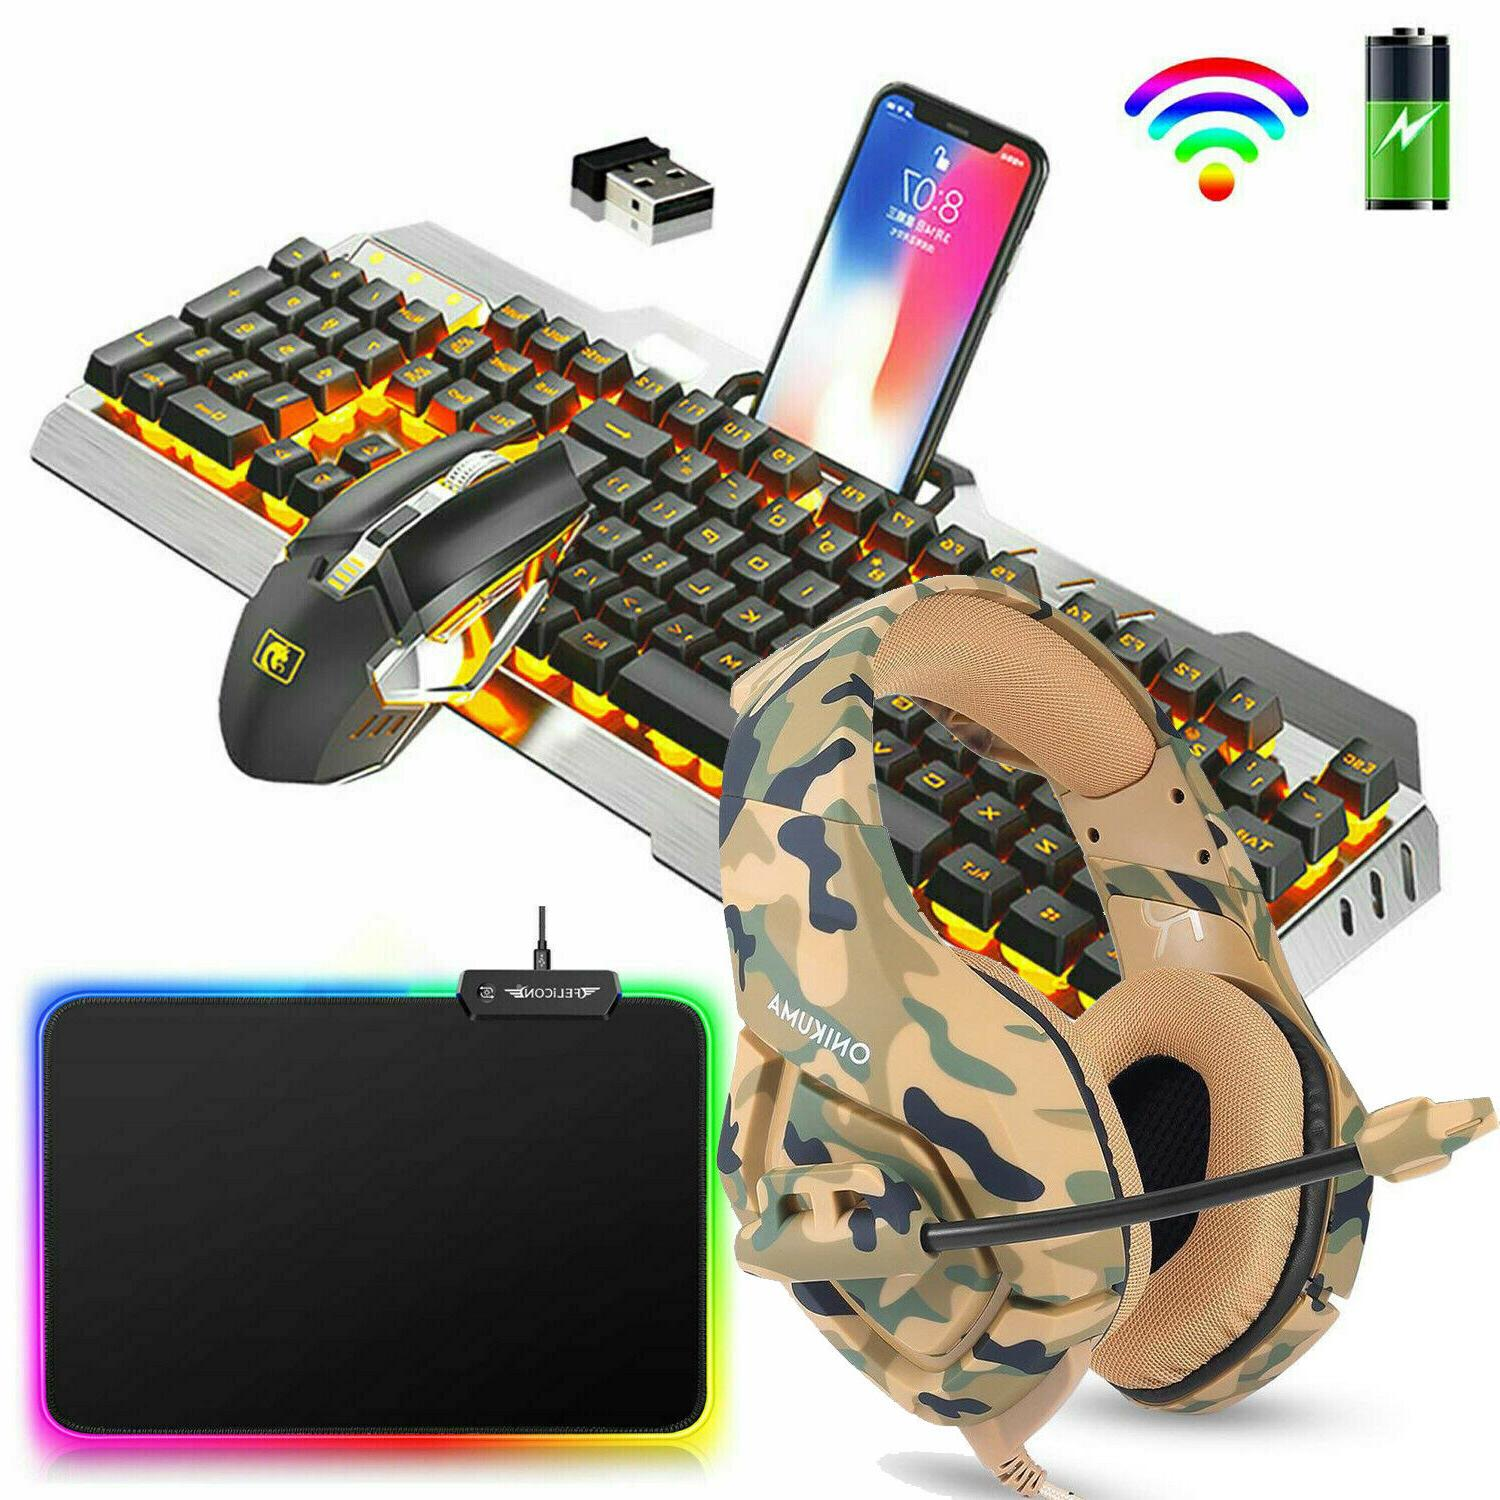 rechargeable rainbow led backlit gaming keyboard mouse